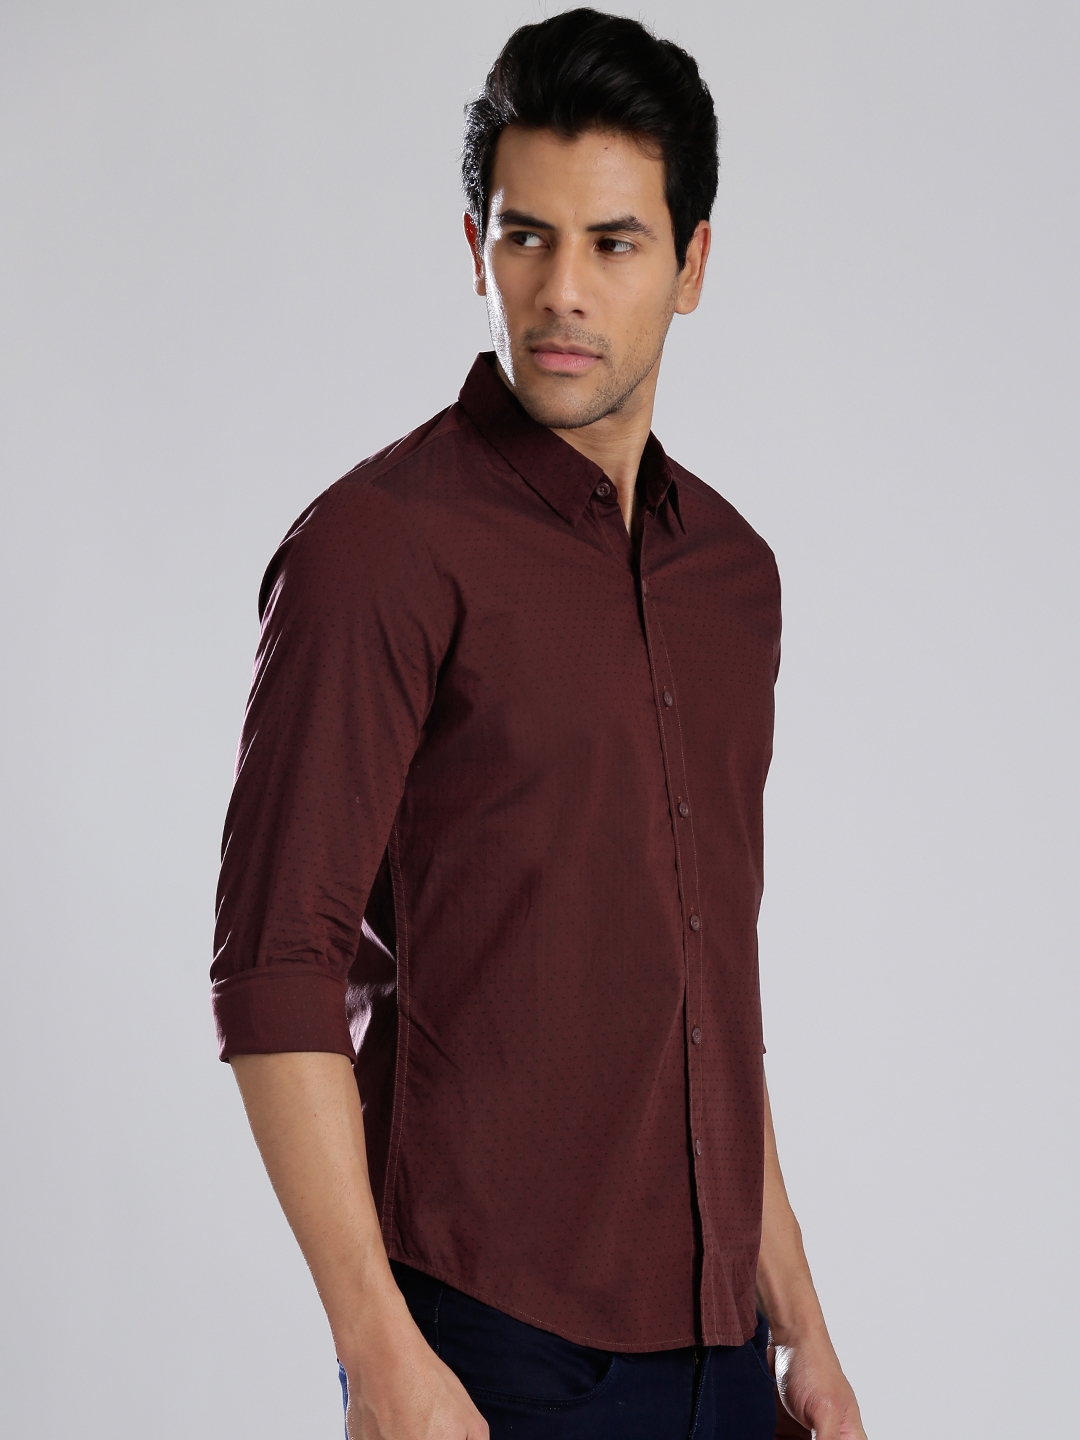 afbb71cfc4 Buy Levi s Maroon Casual Shirt - Shirts for Men 1393671